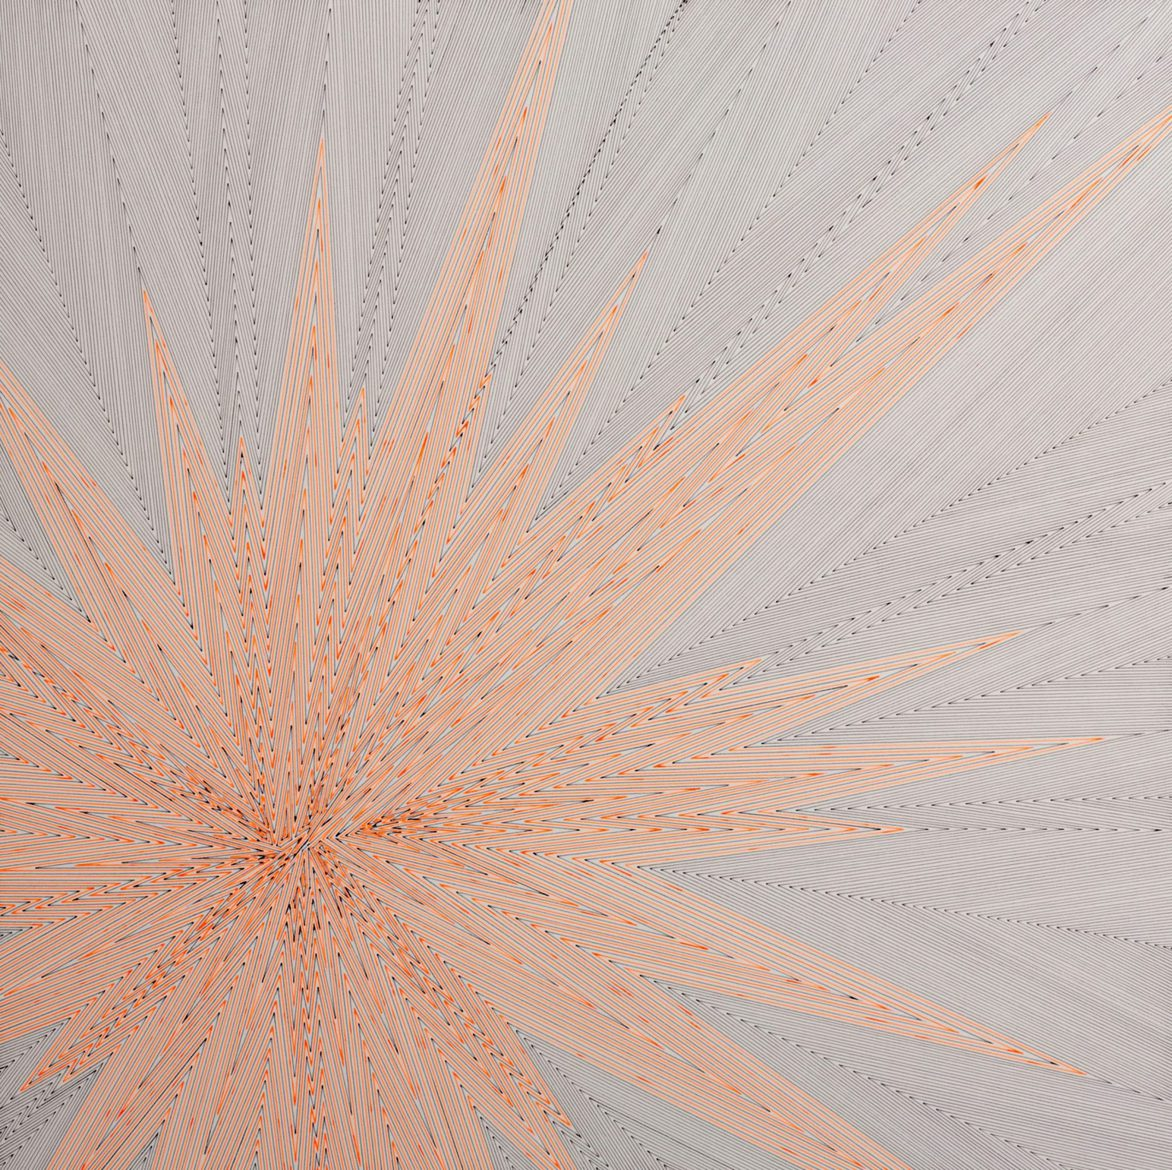 Kevin Osmond, 'Flash point', 2012, Fluorescent orange and grey pens on ʻWhite' 300gsm archival paper (Original drawing signed and dated on verso), 50 x 50cm